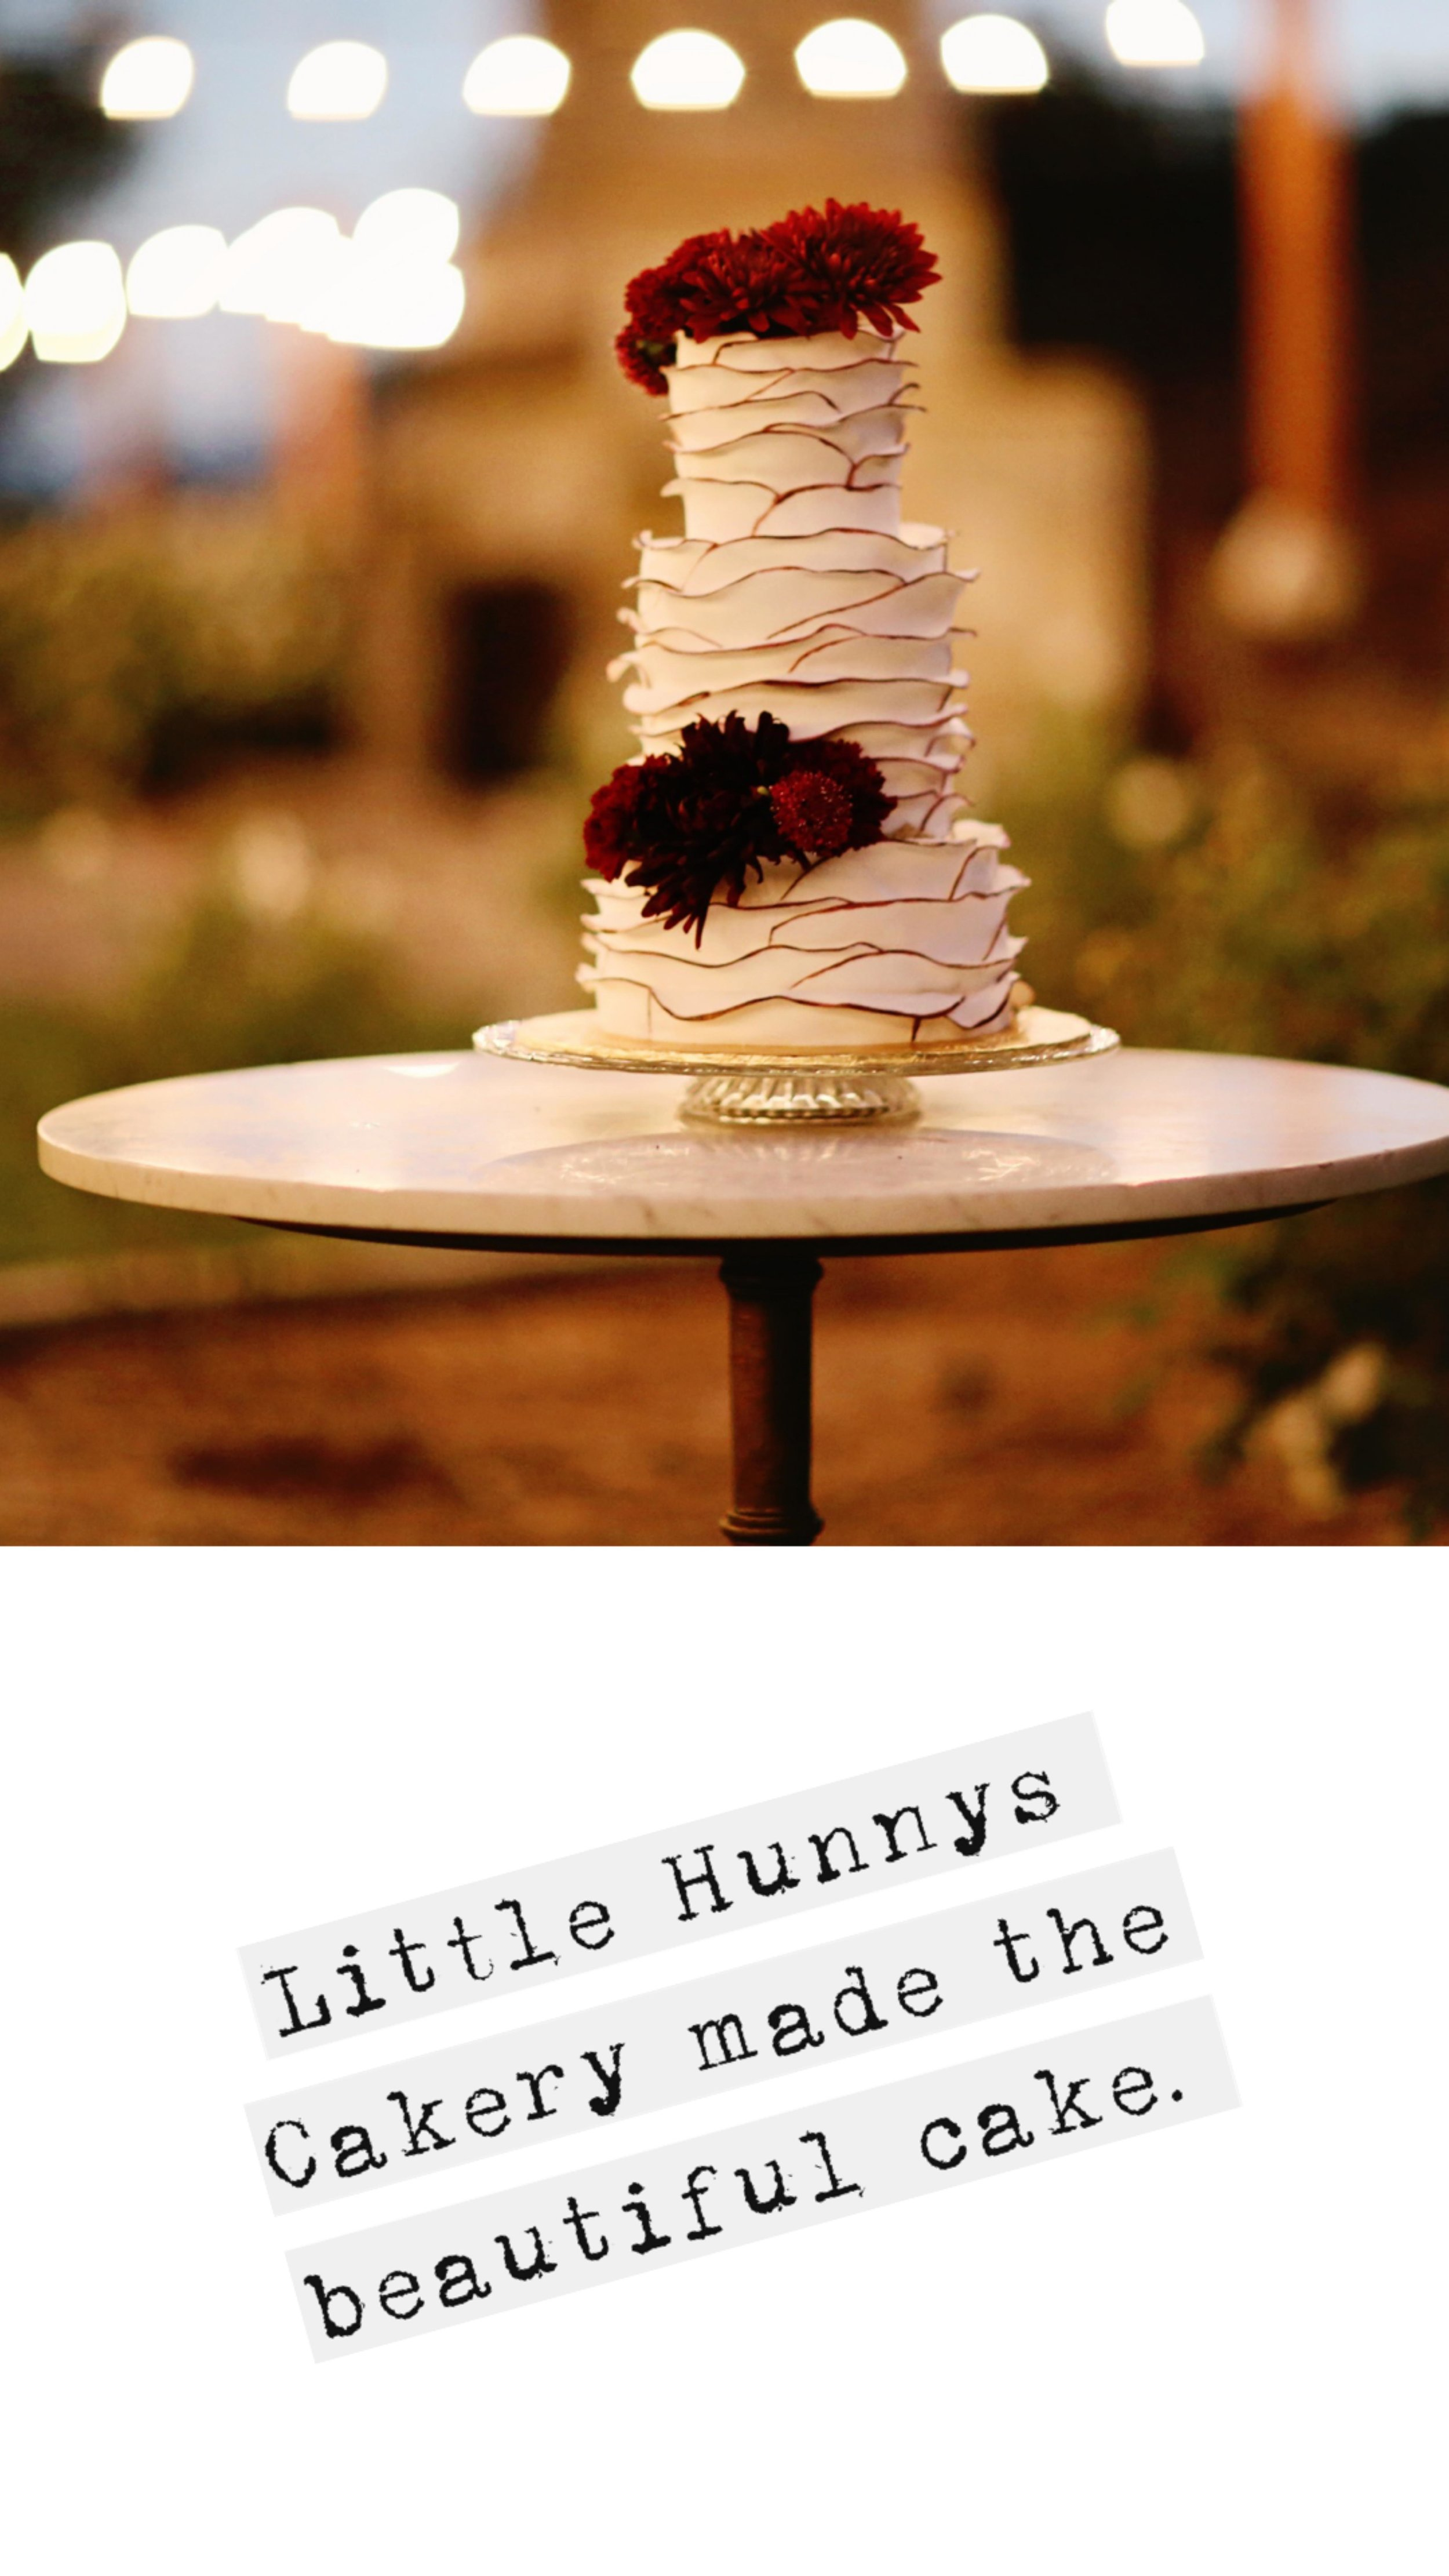 Linda from  Little Hunnys Cakery  made this marsala ruffled wedding cake for the styled shoot in Murrieta at Chateau Adare.